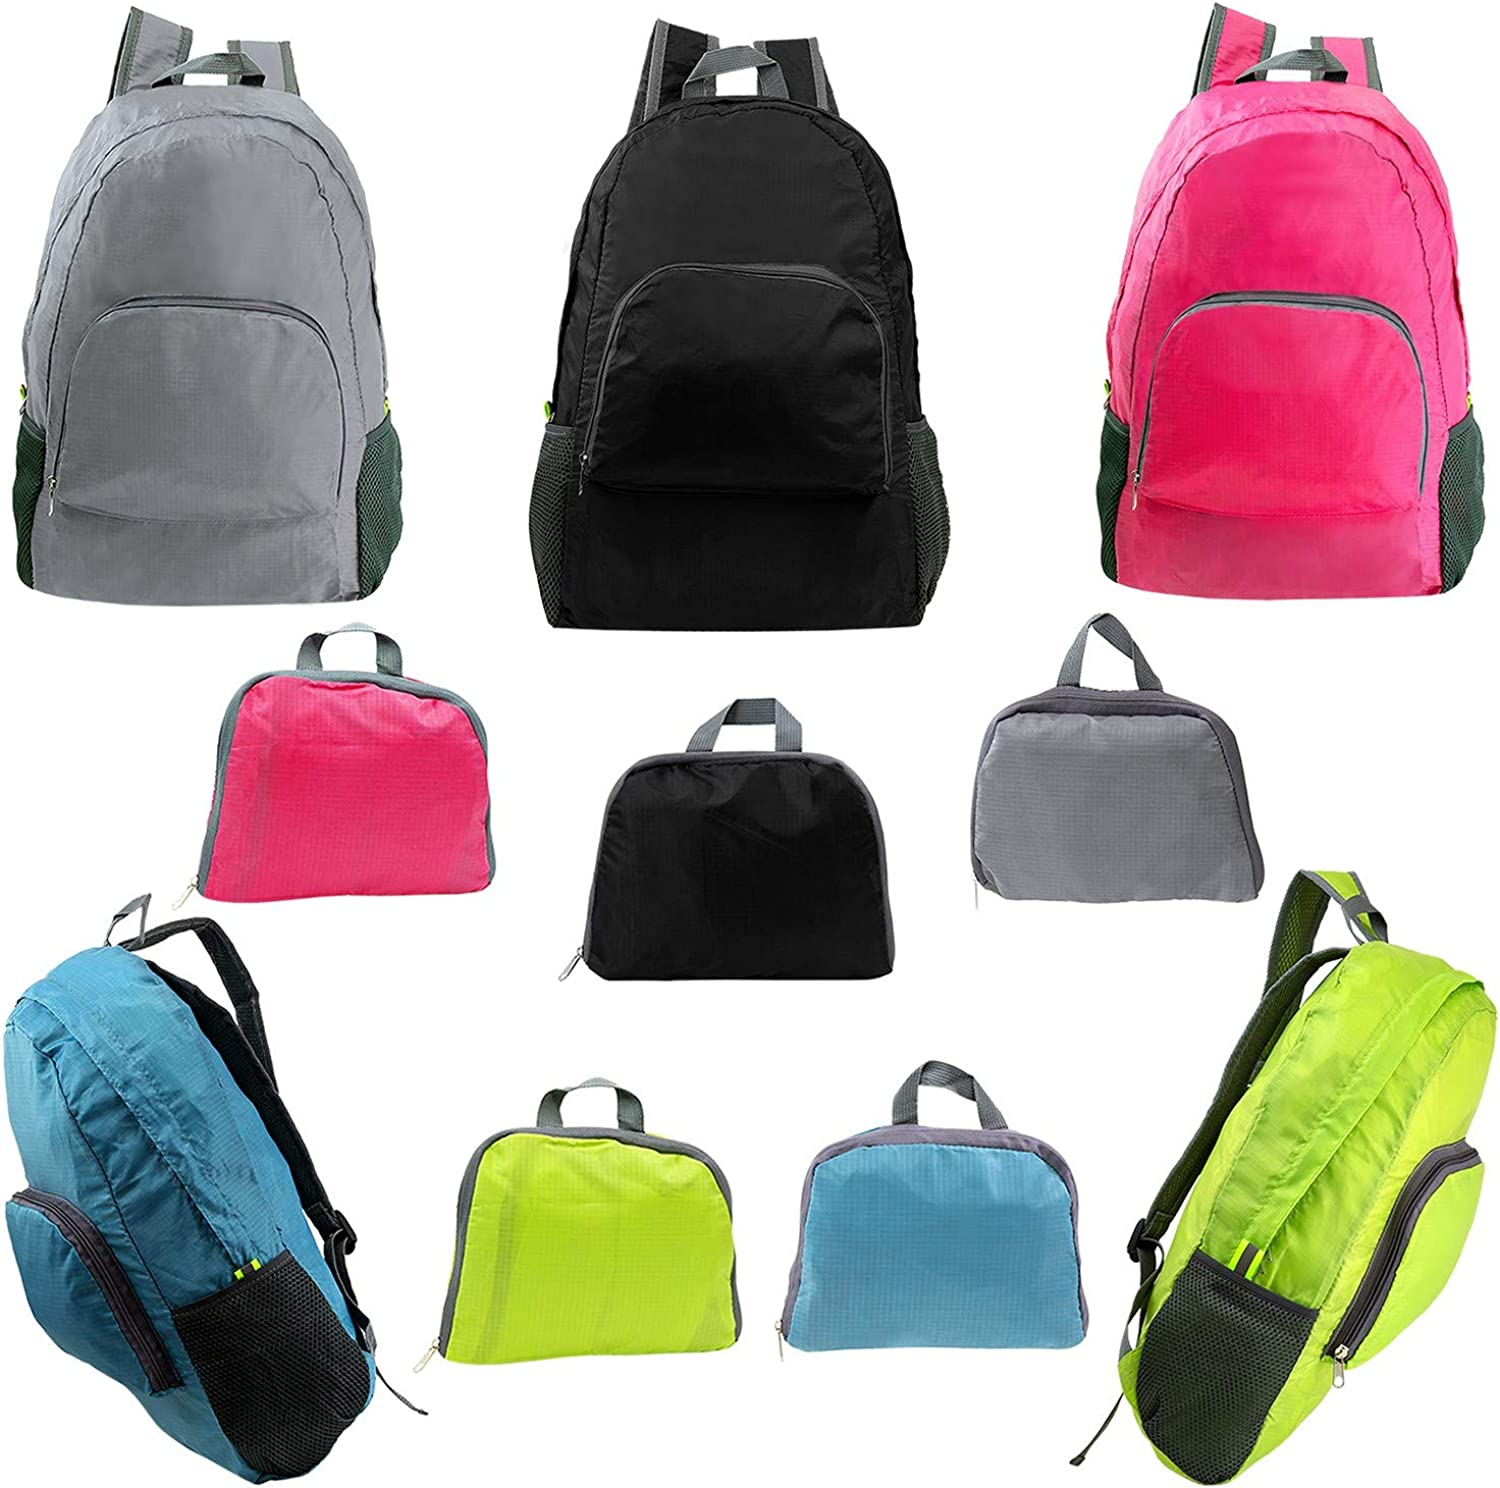 61a06d65598 17 Wholesale Ultra Lightweight Foldable Backpack in 5 Assorted colors Bulk  Case of 24 Bookbags